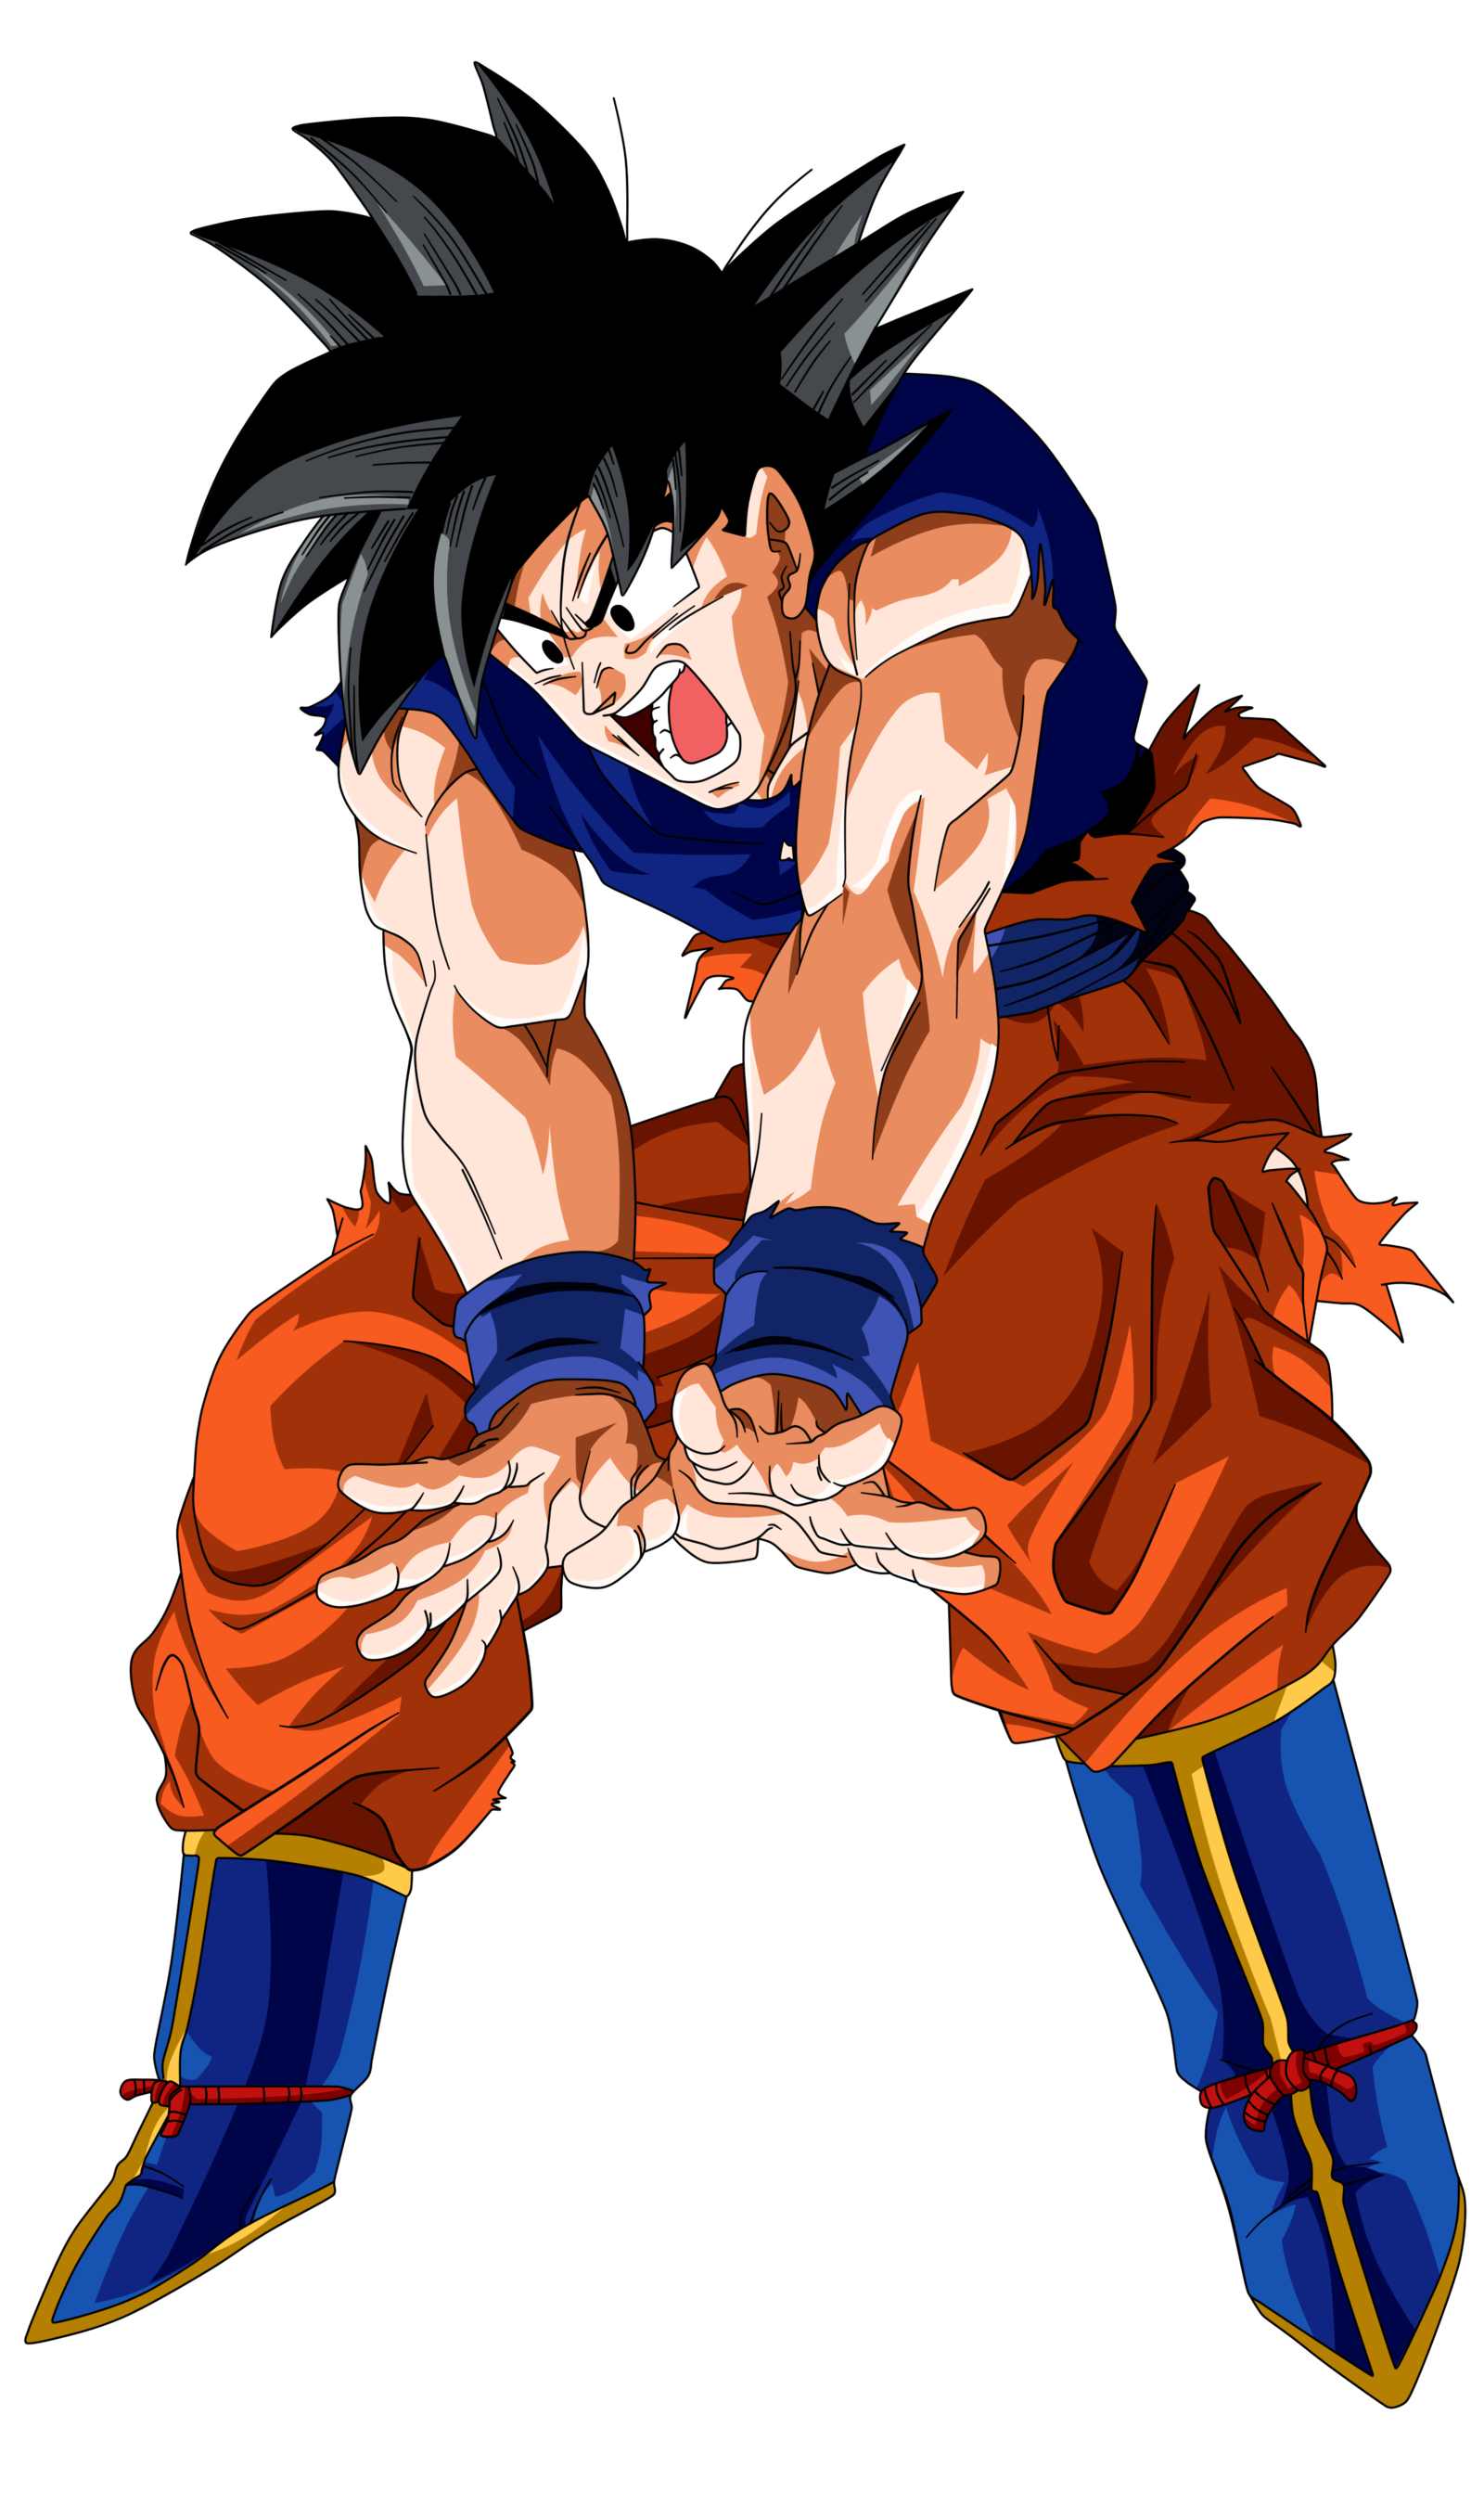 Z Characters Anime : Imagenes png buscar con google visit now for d dragon